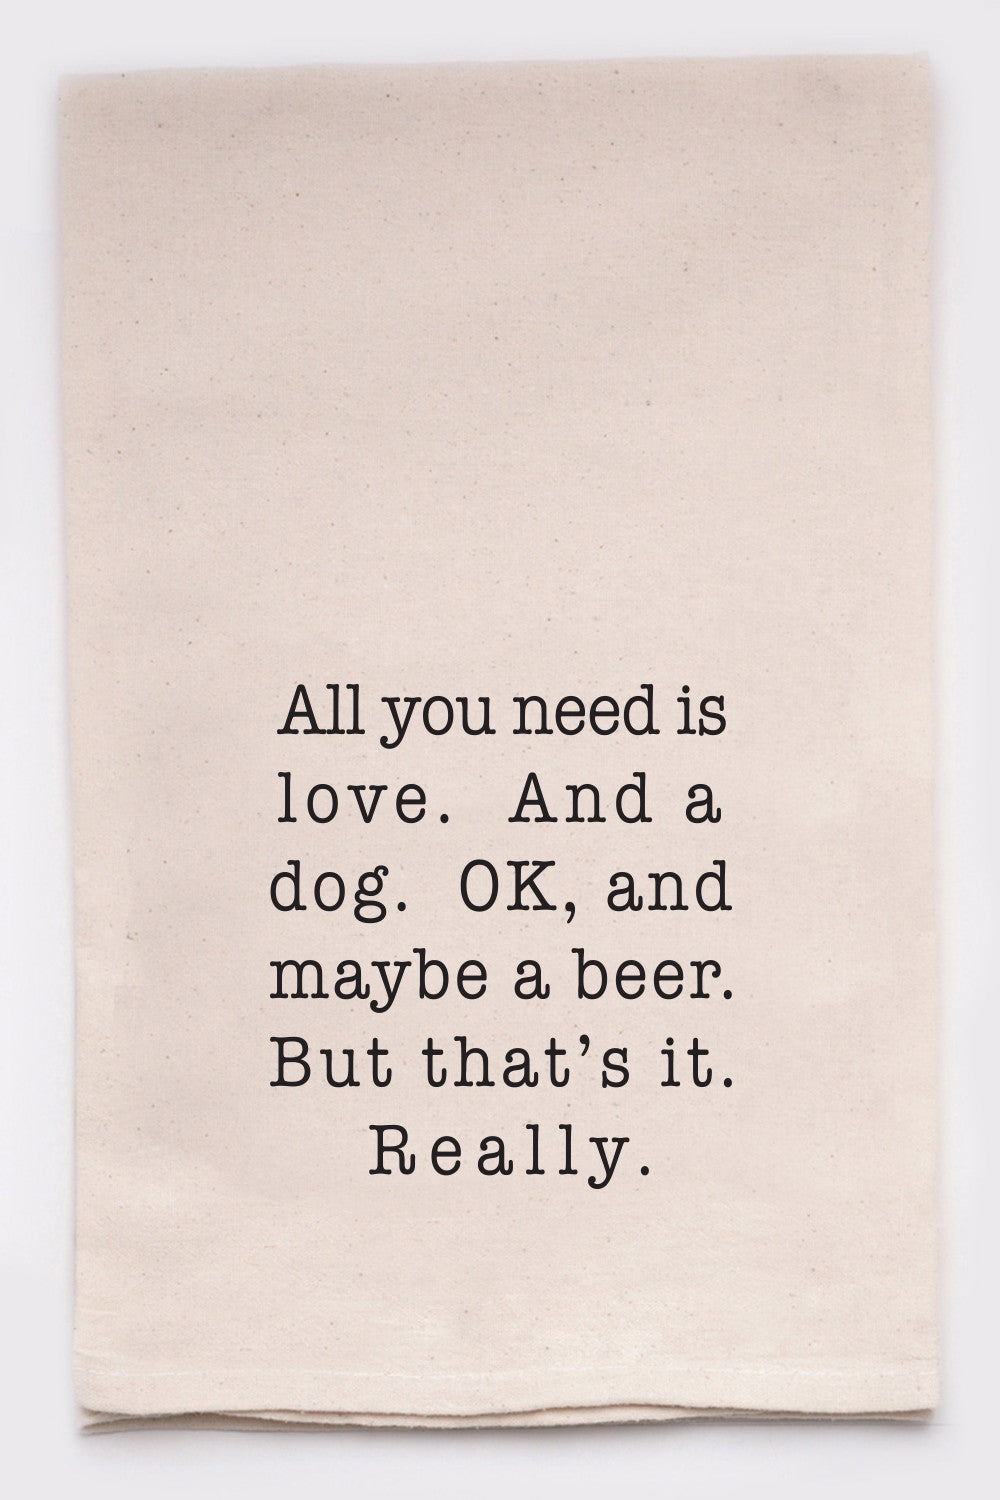 all you need is love. and a dog. OK, and a beer.